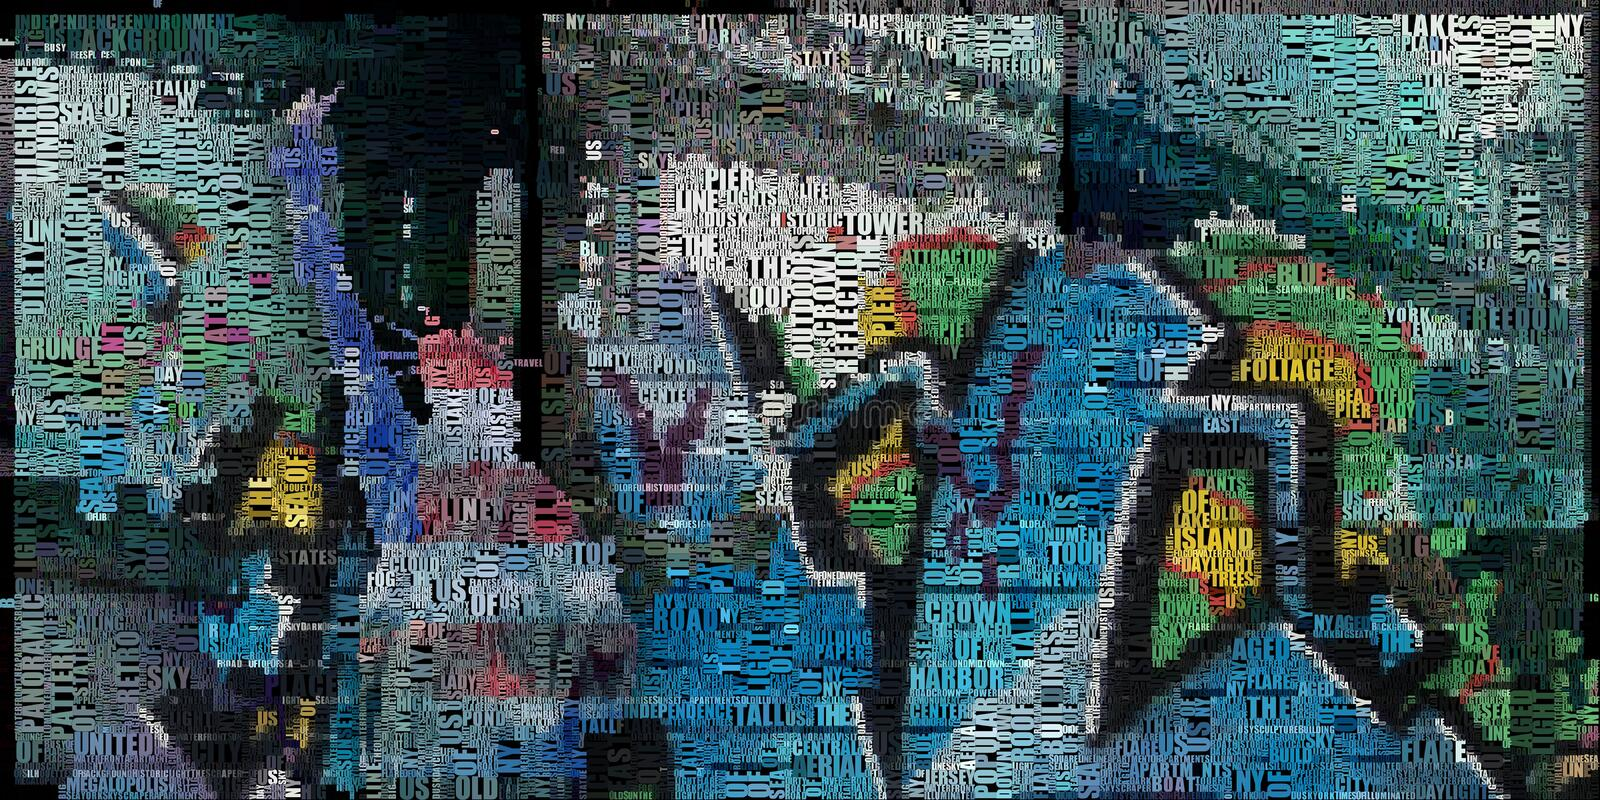 Liberty. Abstract painting. Liberty statue, bridge and graffiti background. 3D Render. Composed entirely of words stock illustration